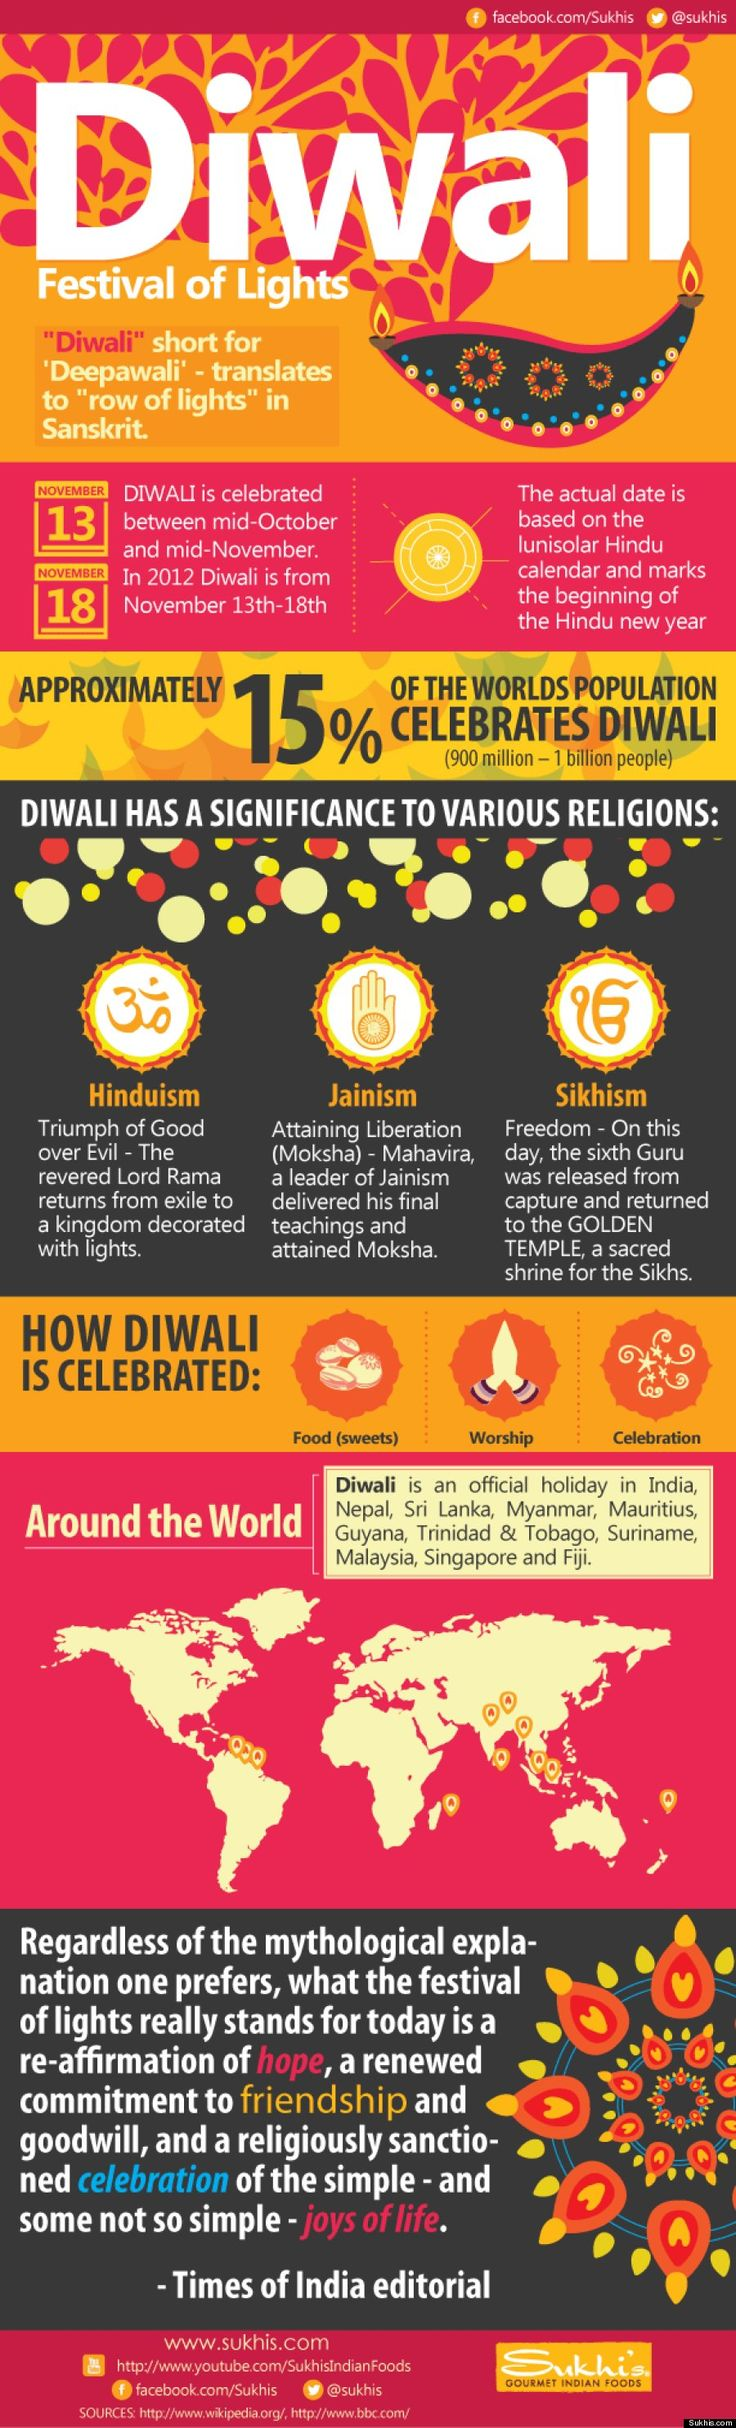 Diwali 2012: The Festival Of Lights (PHOTOS, LIVE UPDATES)